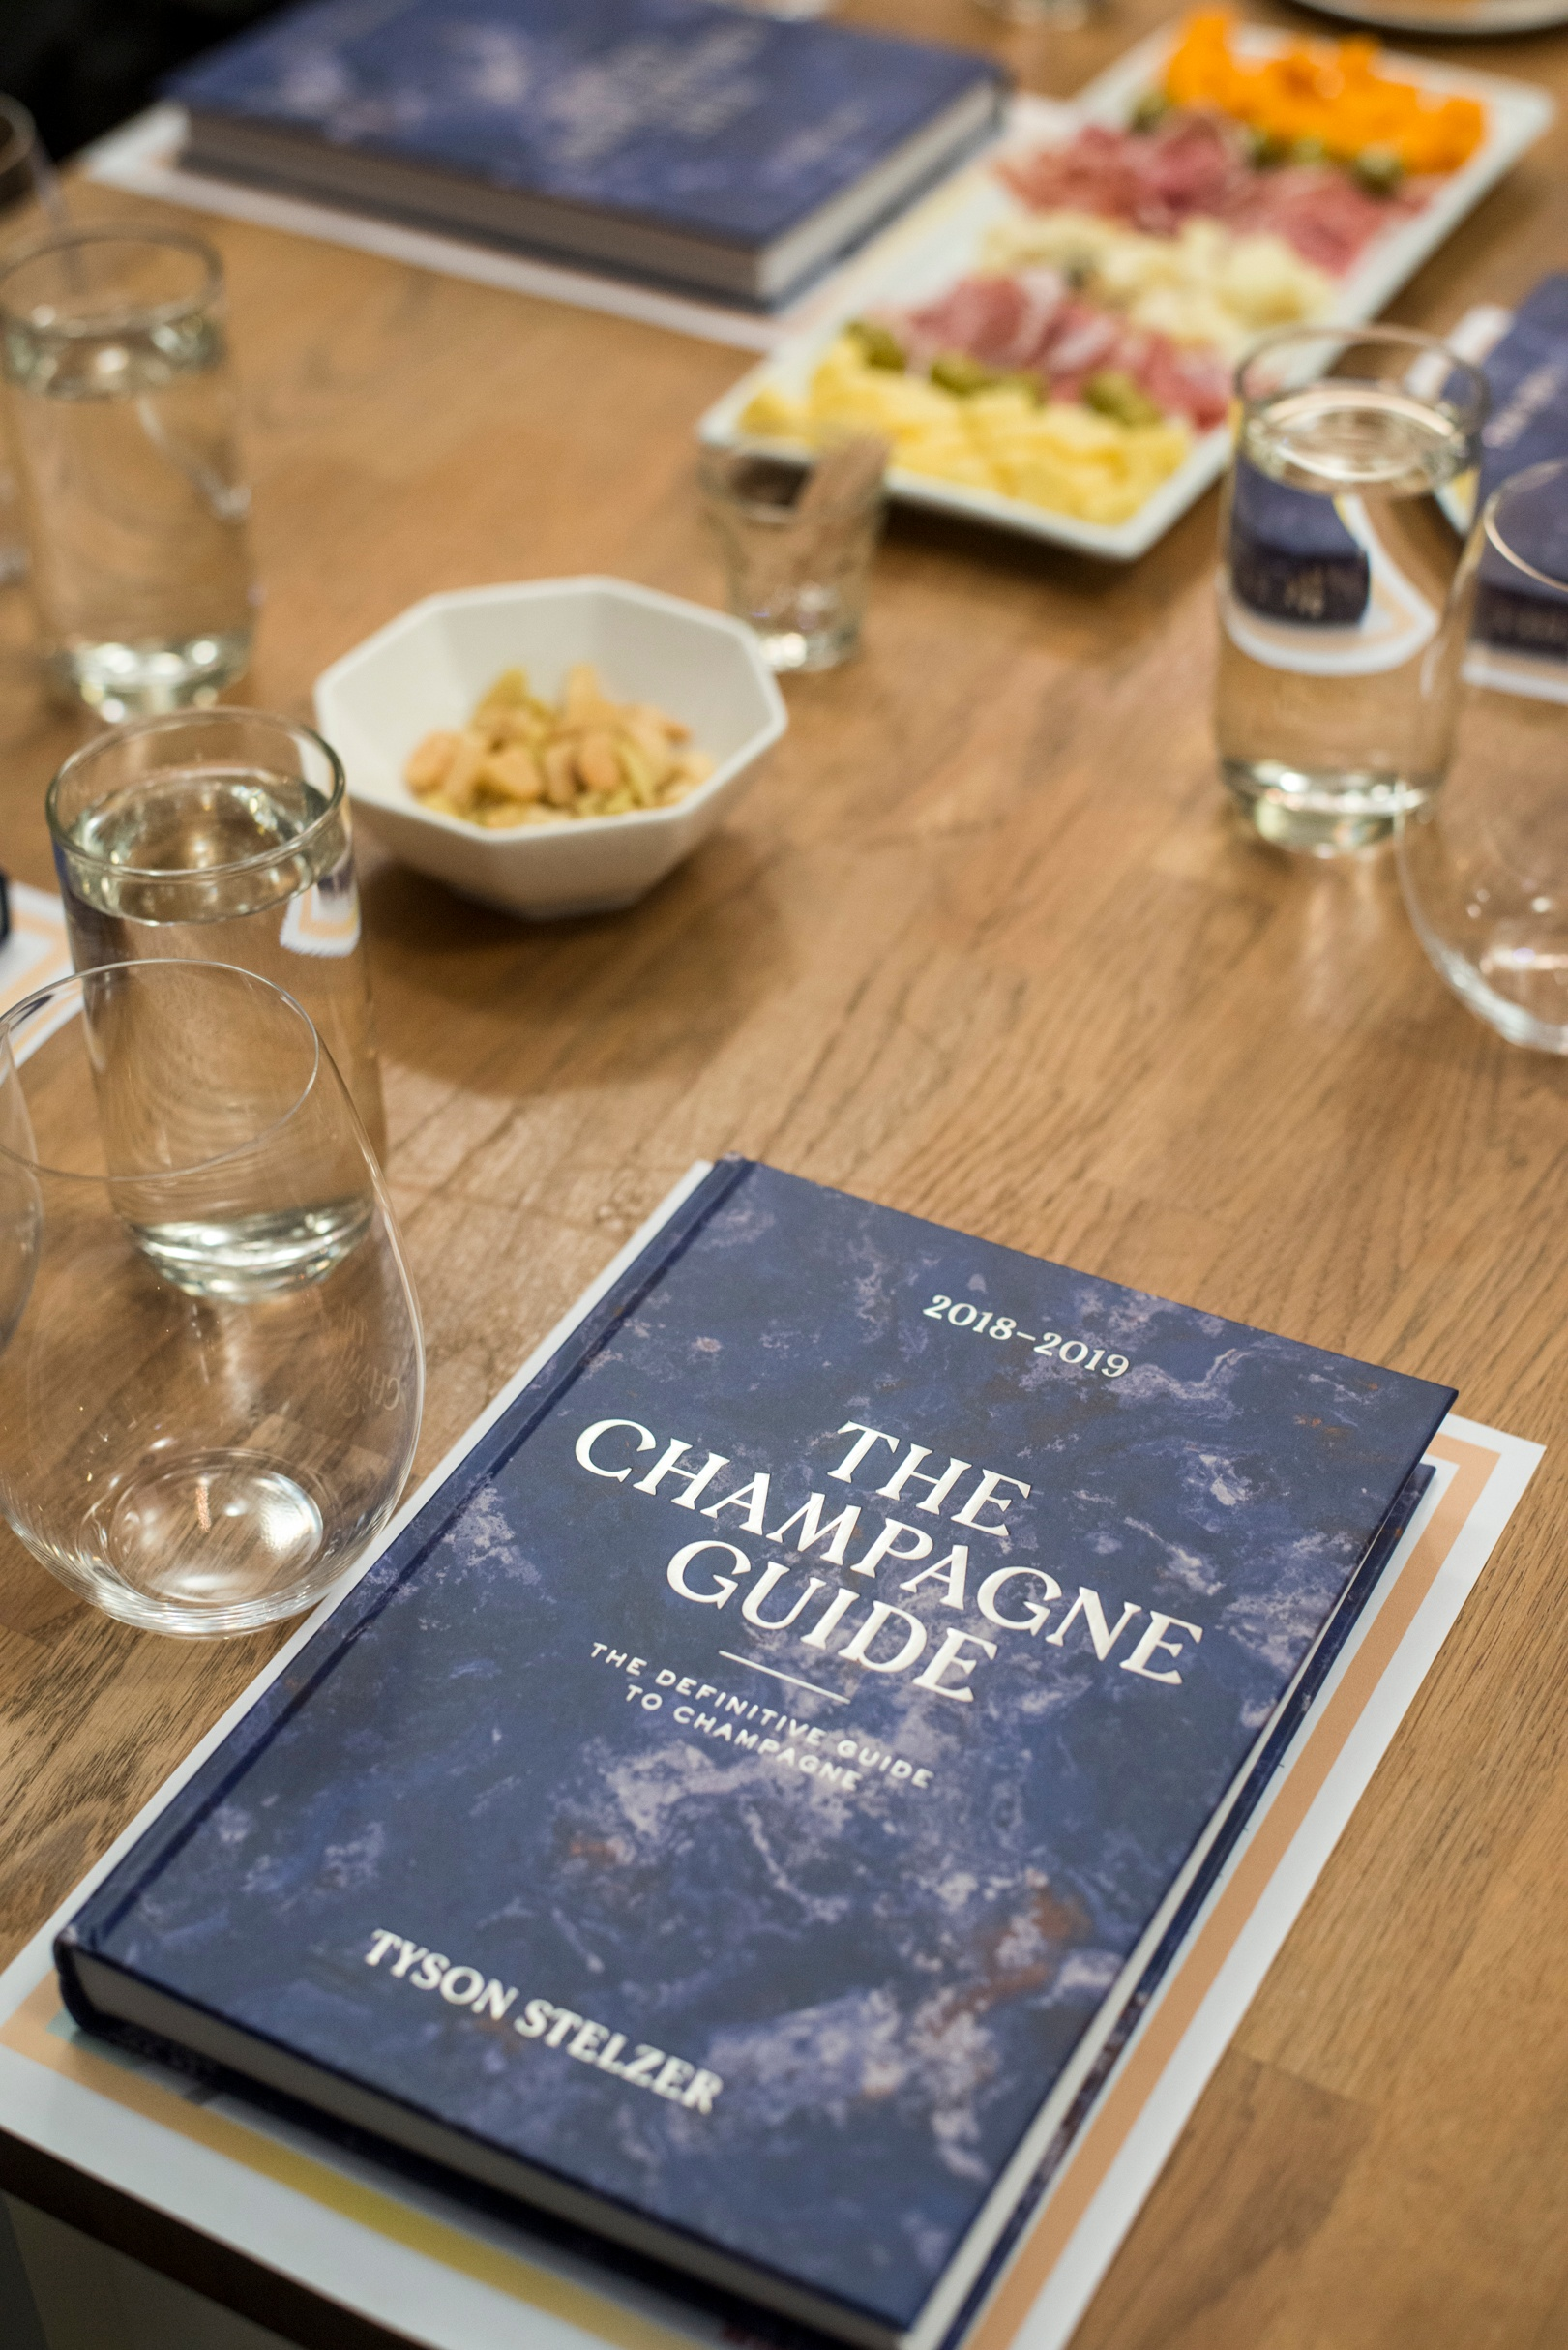 The champagne guide by Tyson Stelzer